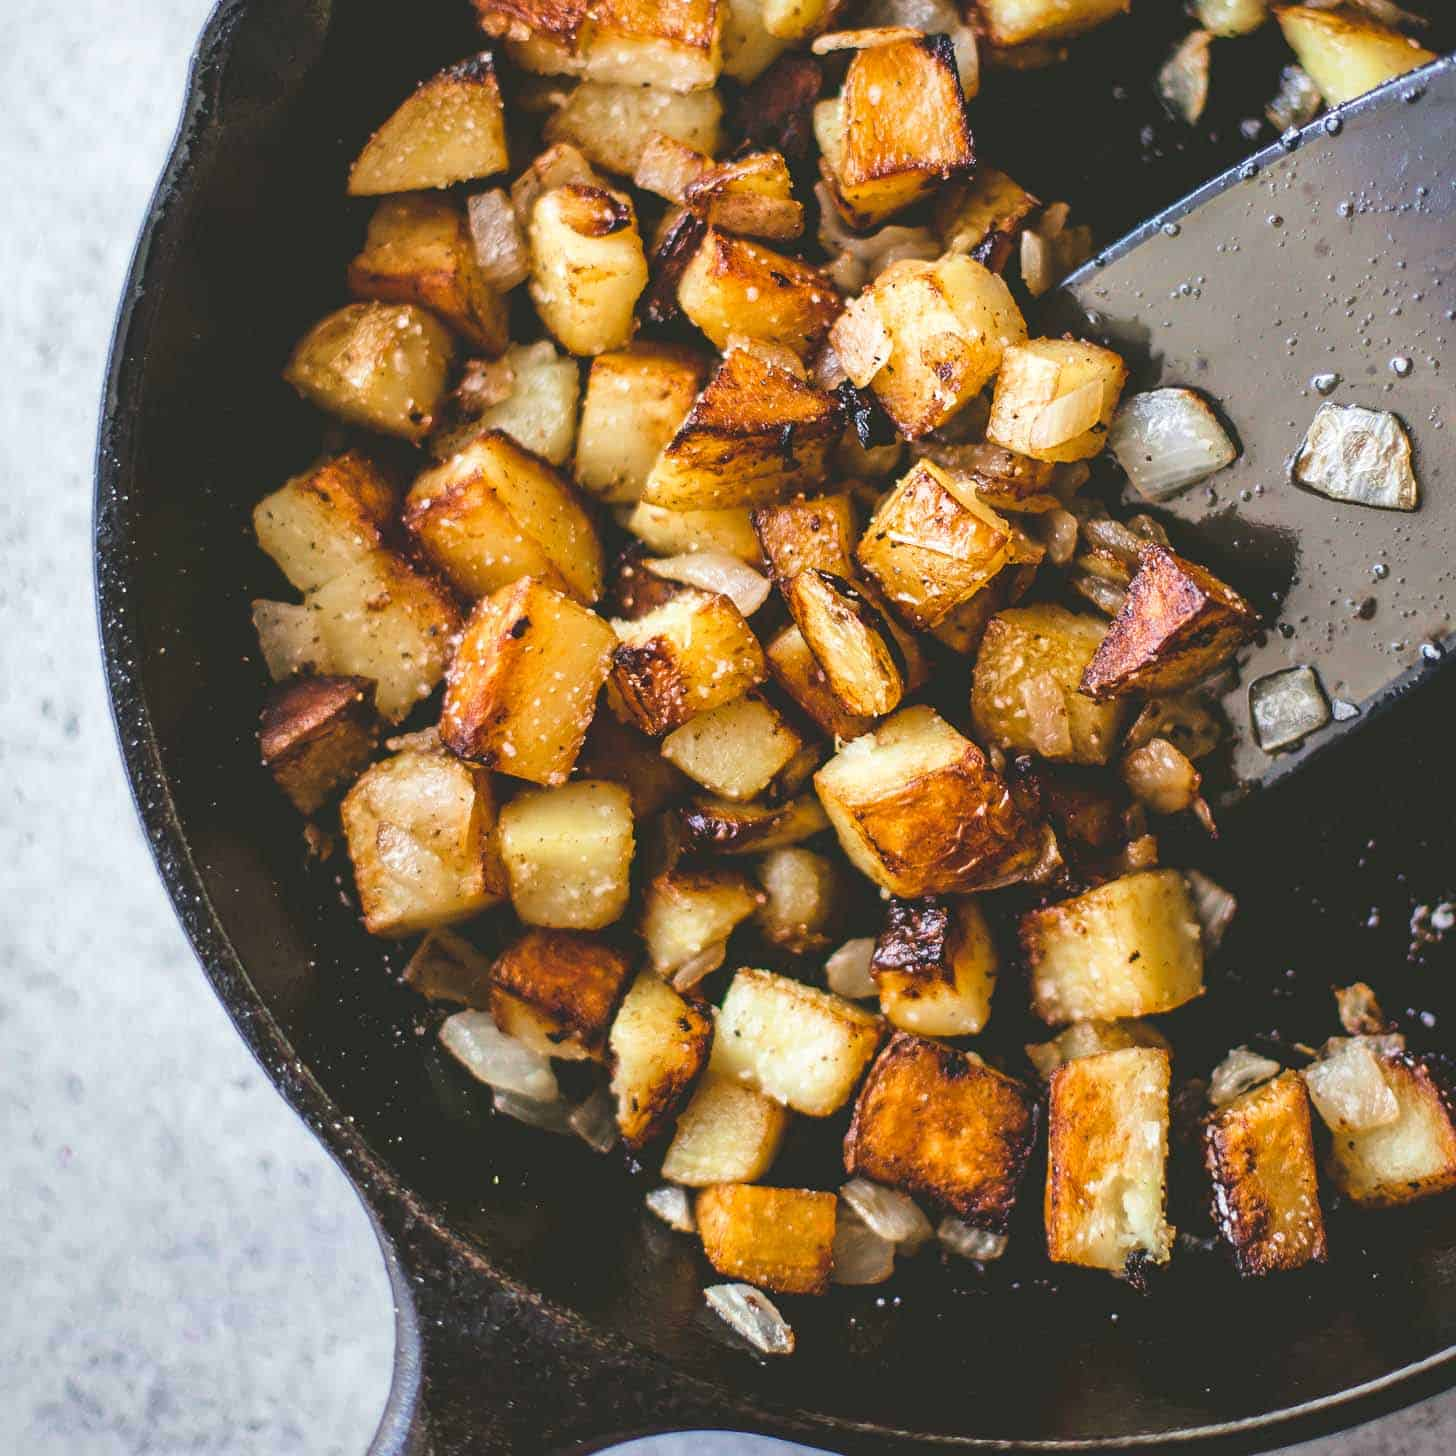 cooking potatoes in a skillet